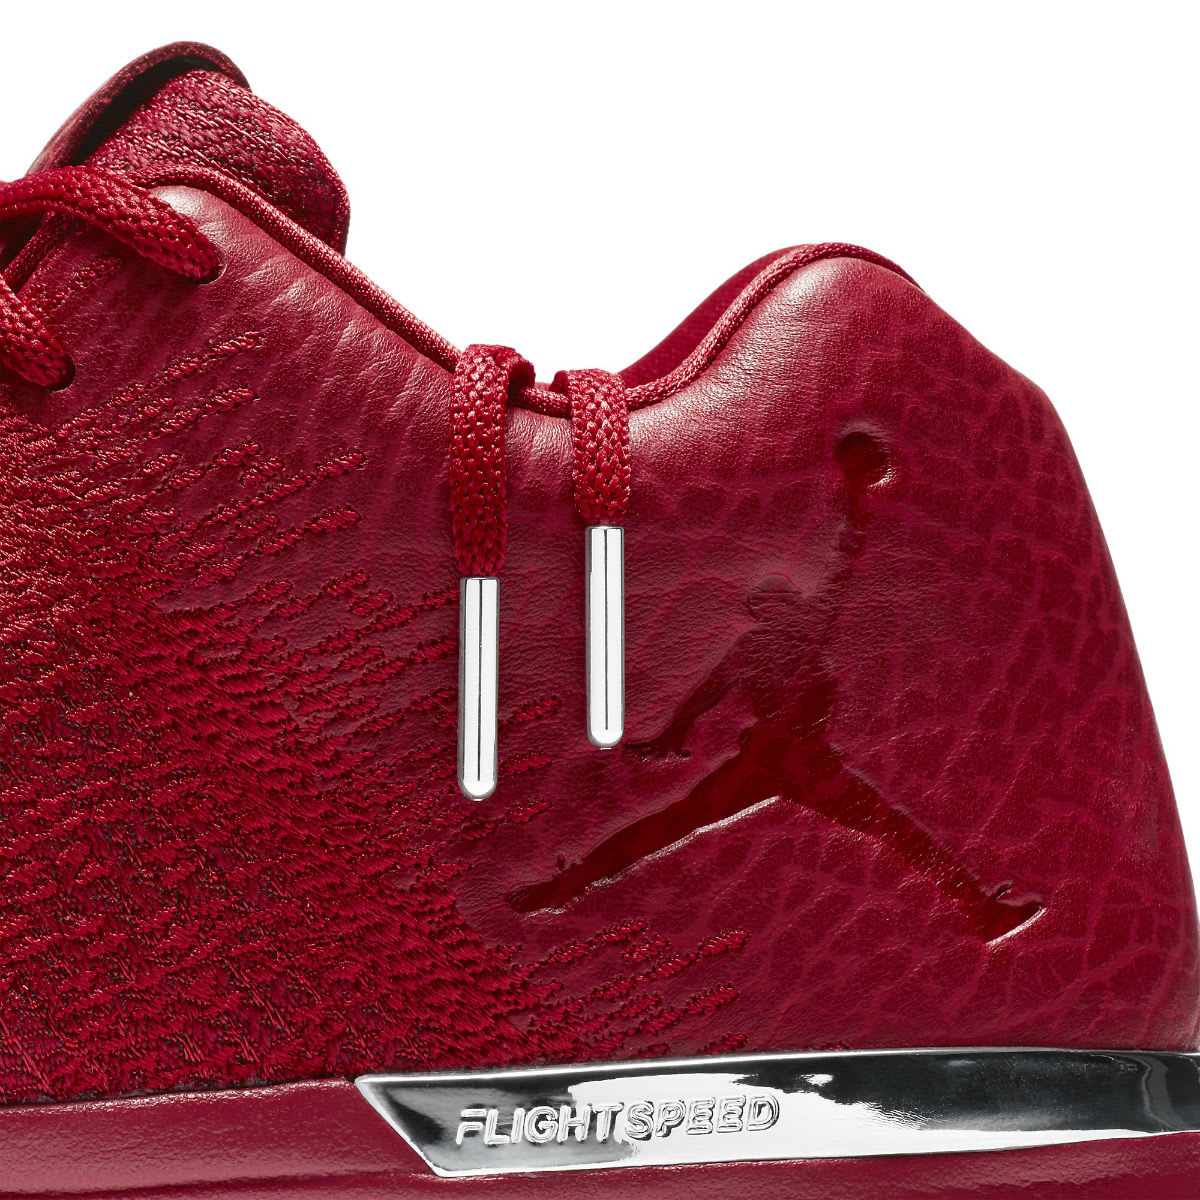 Air Jordan 31 Low Chicago Away Red Release Date Laces 897564-601